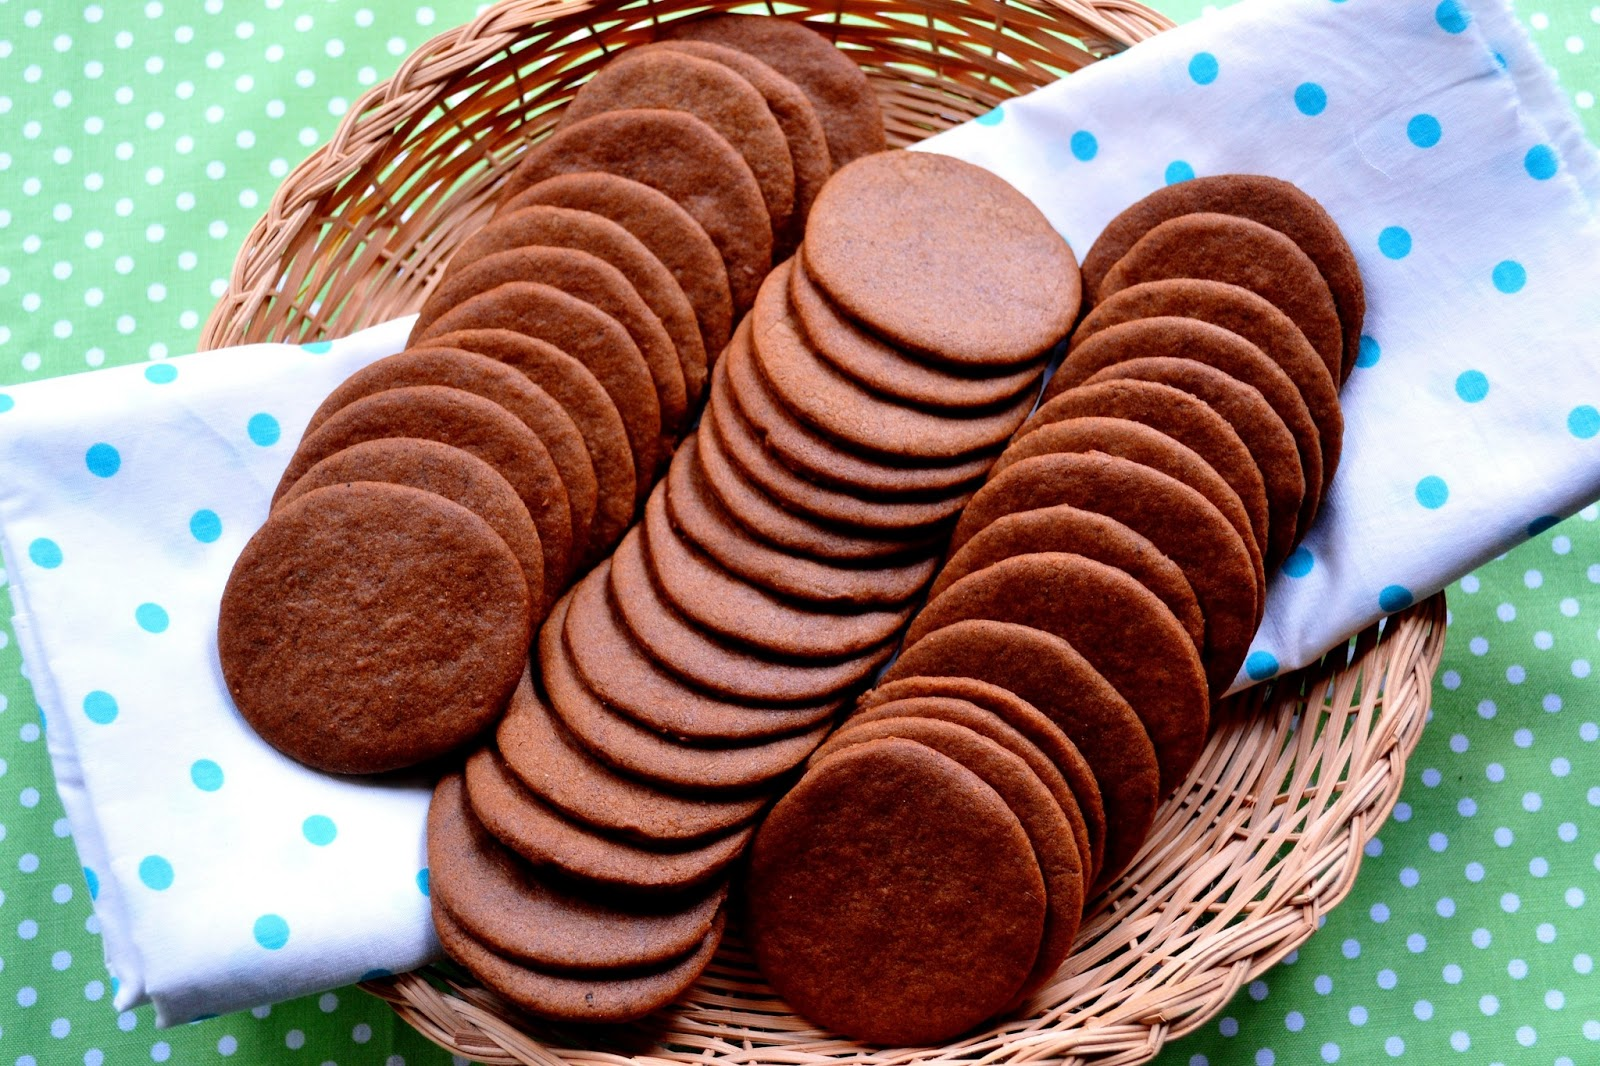 Buy Gingerbread Cookies Online UK